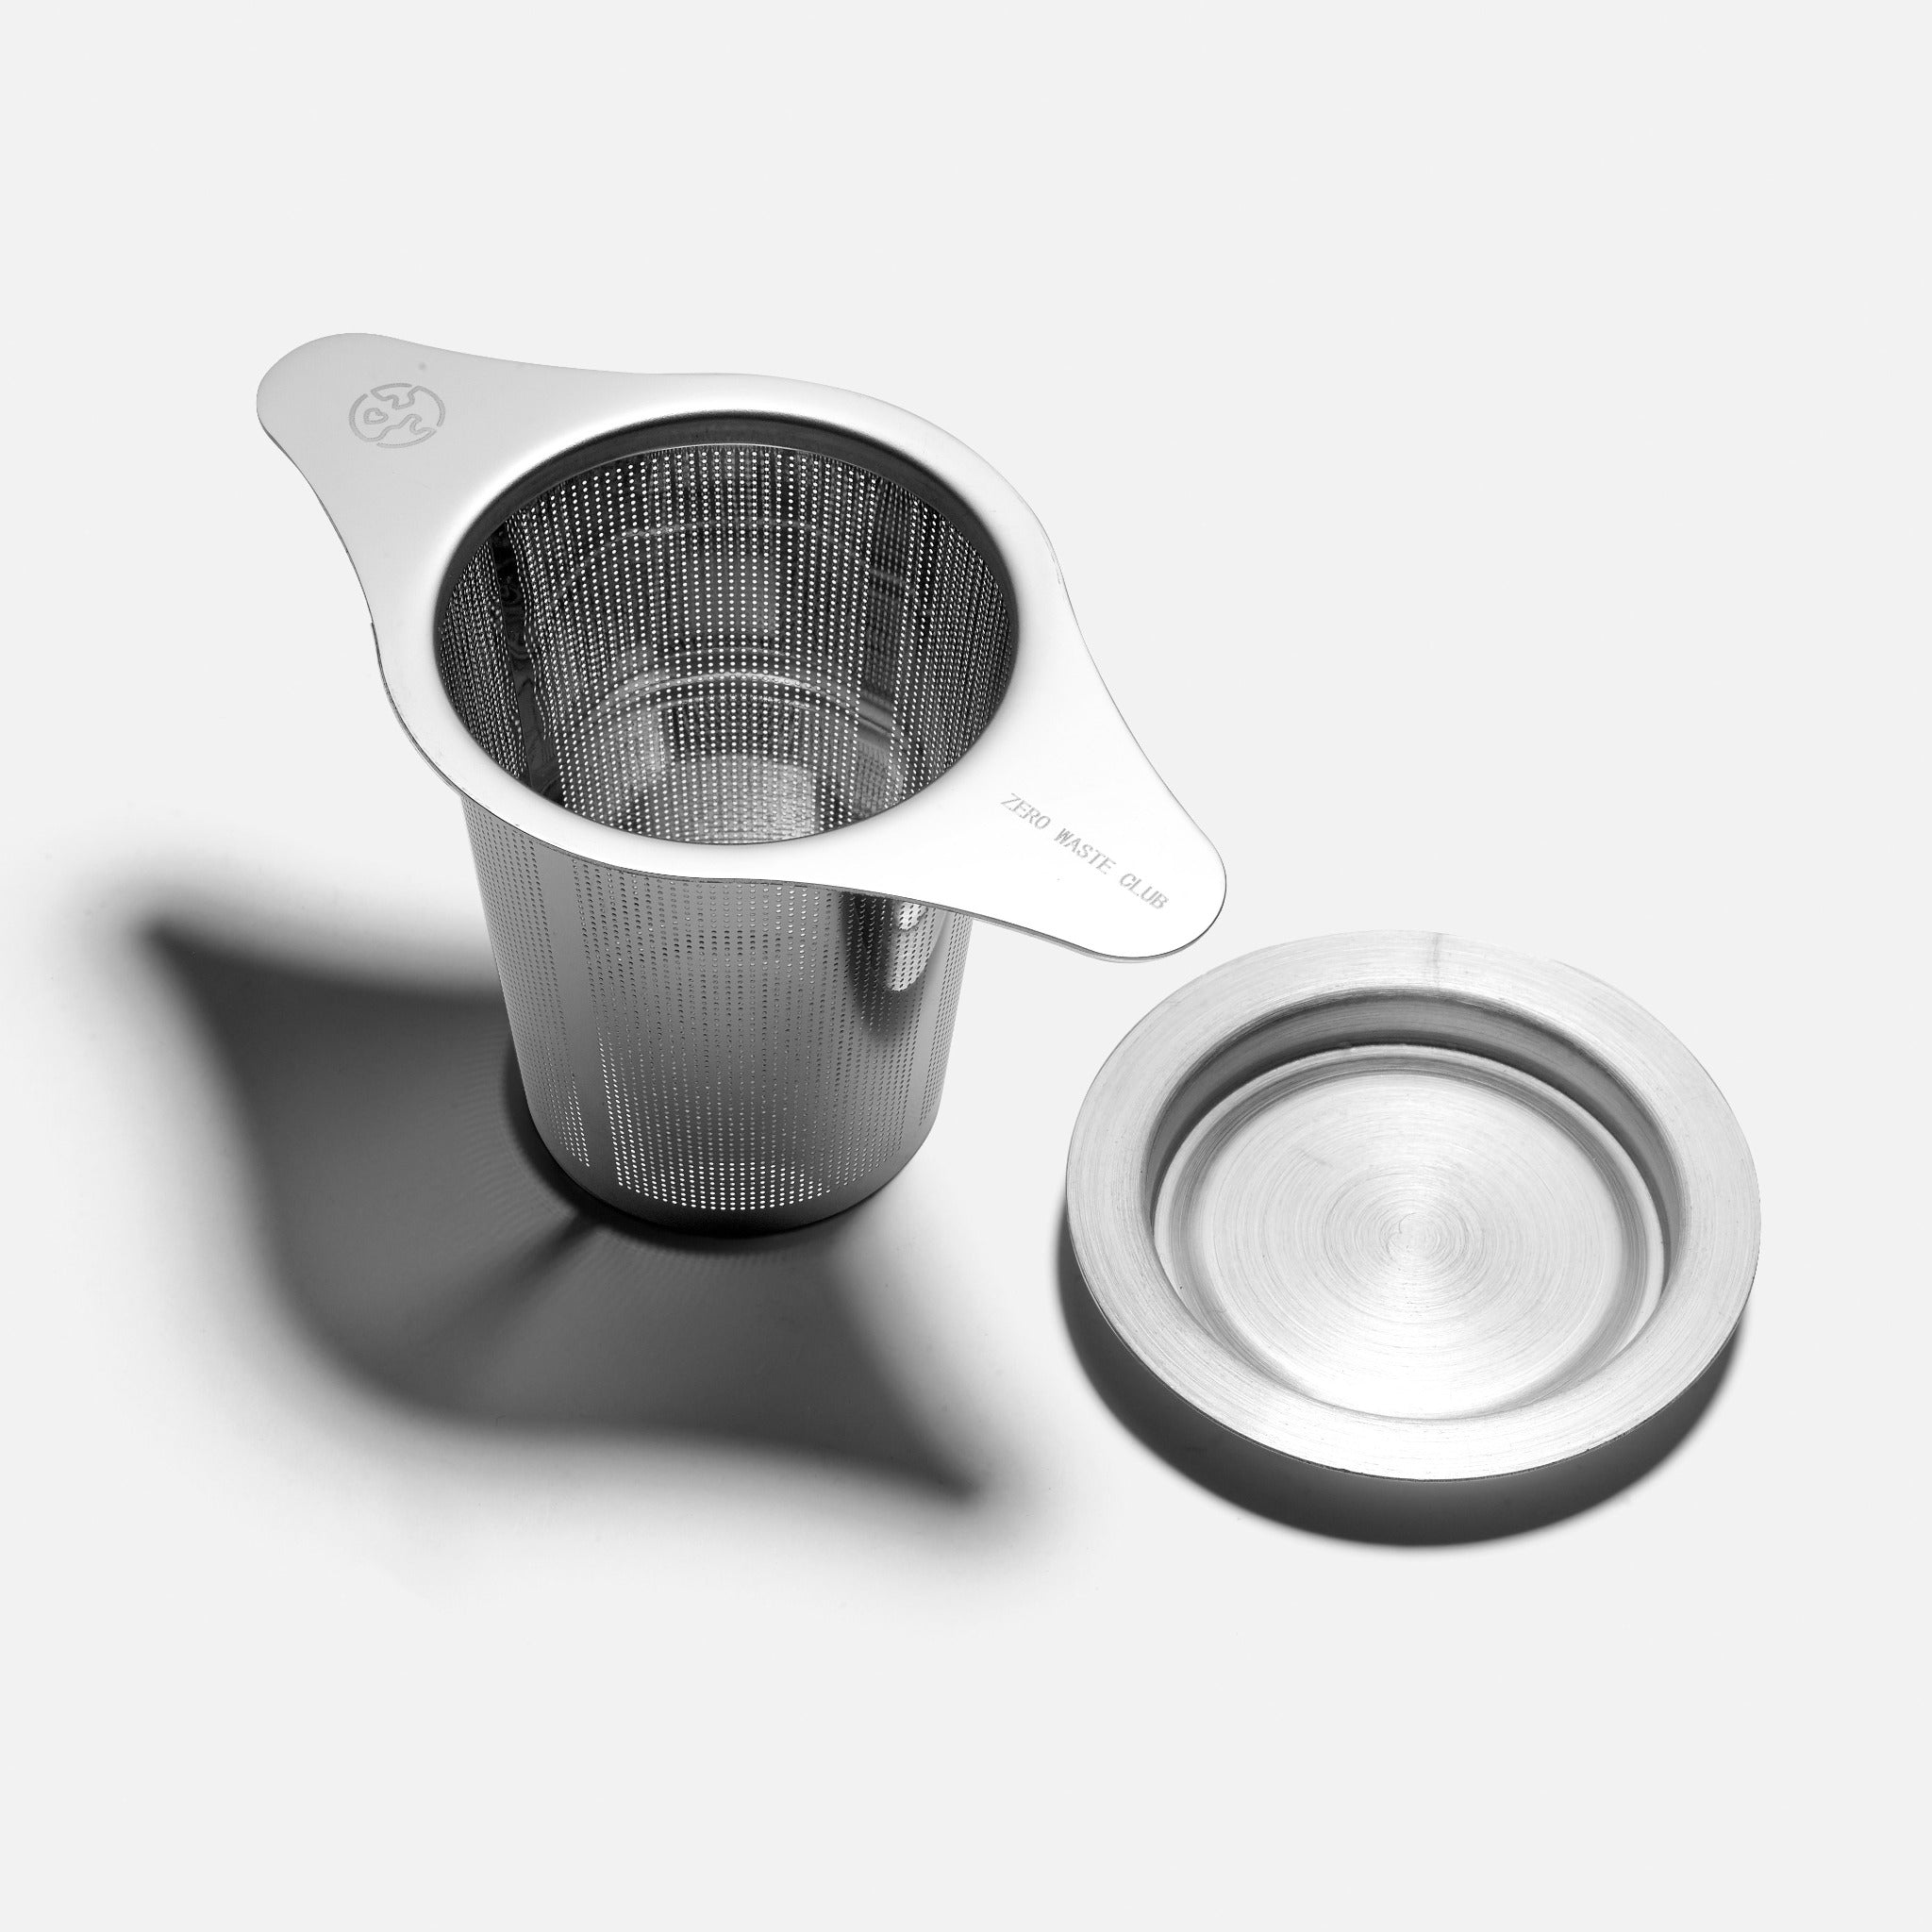 Zero Waste Club reusable stainless steel tea strainer